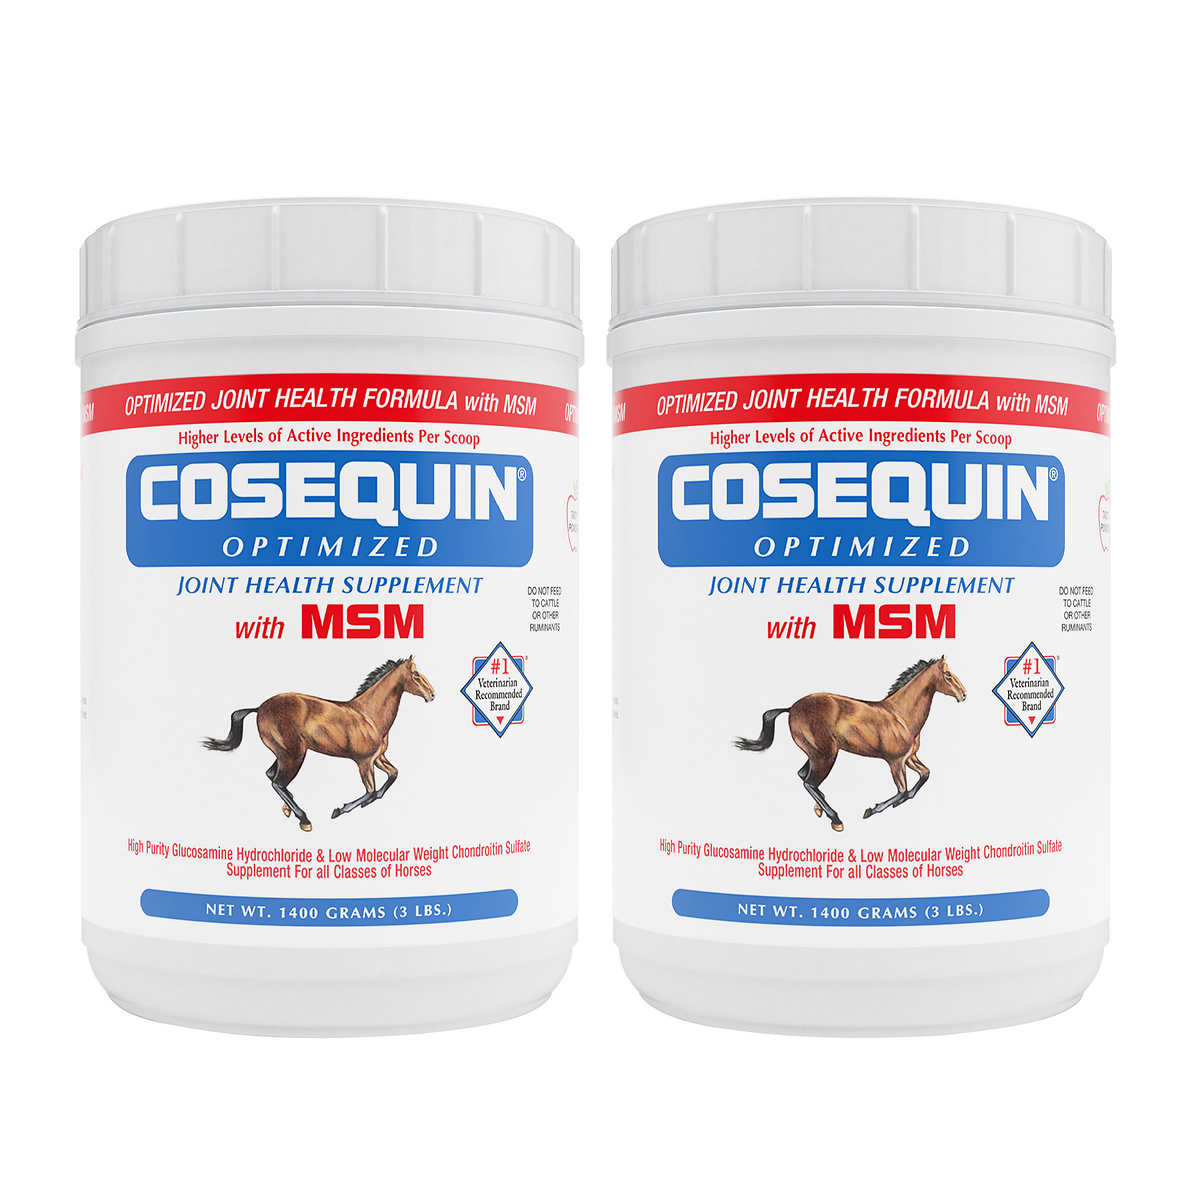 Cosequin Optimized Formula with MSM Equine Powder 3 lb Tub, 2-pack